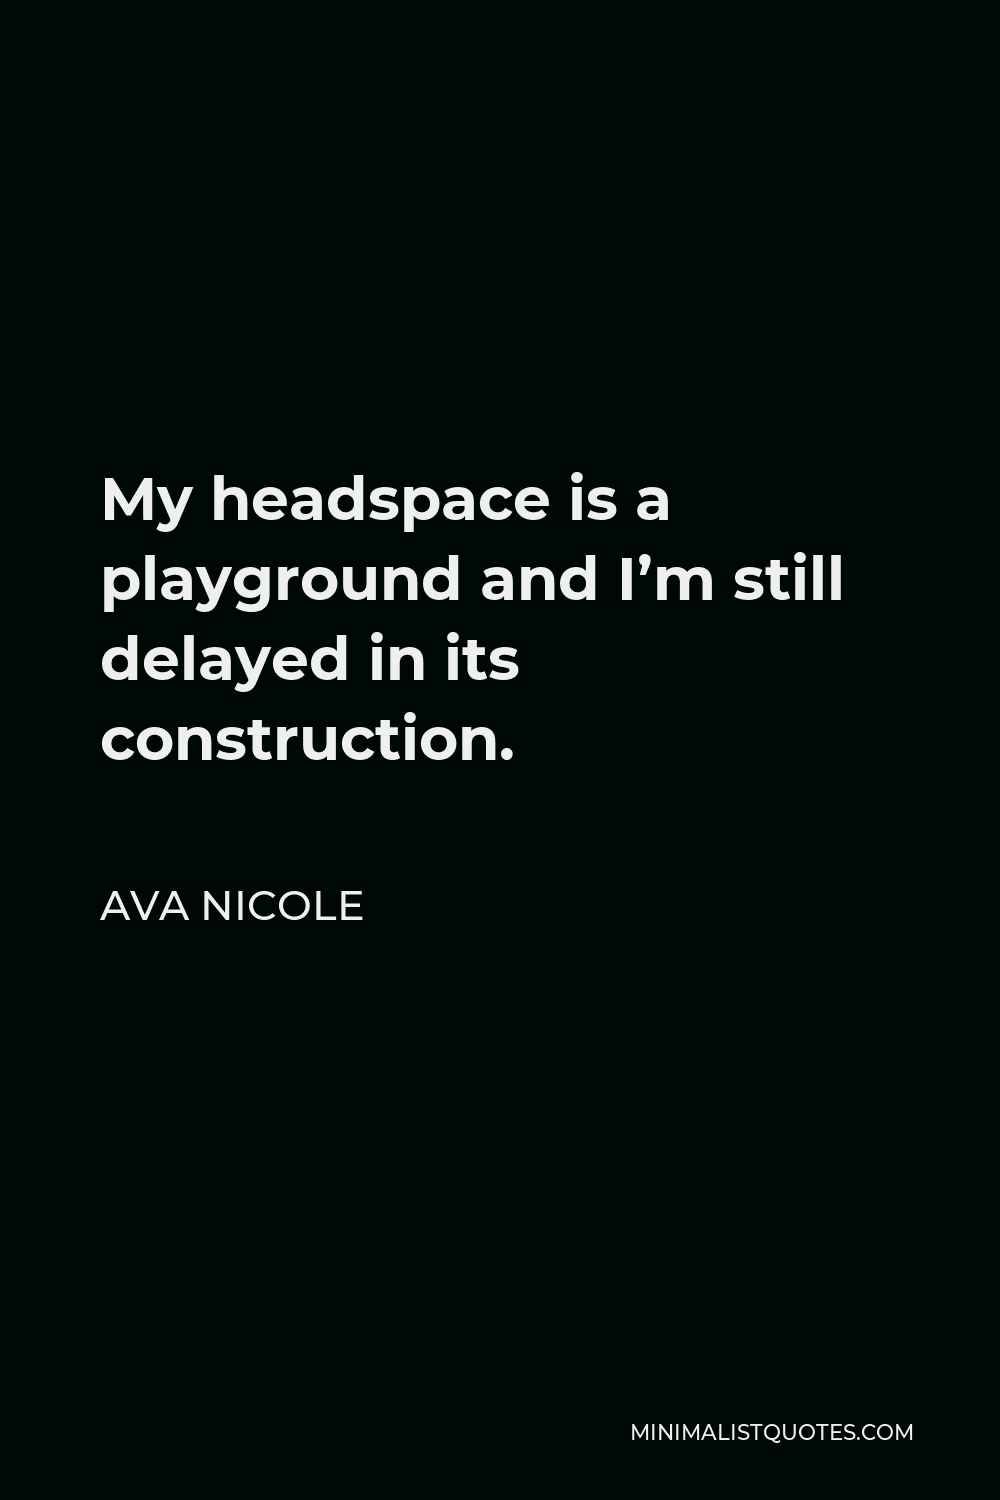 Ava Nicole Quote - My headspace is a playground and I'm still delayed in its construction.